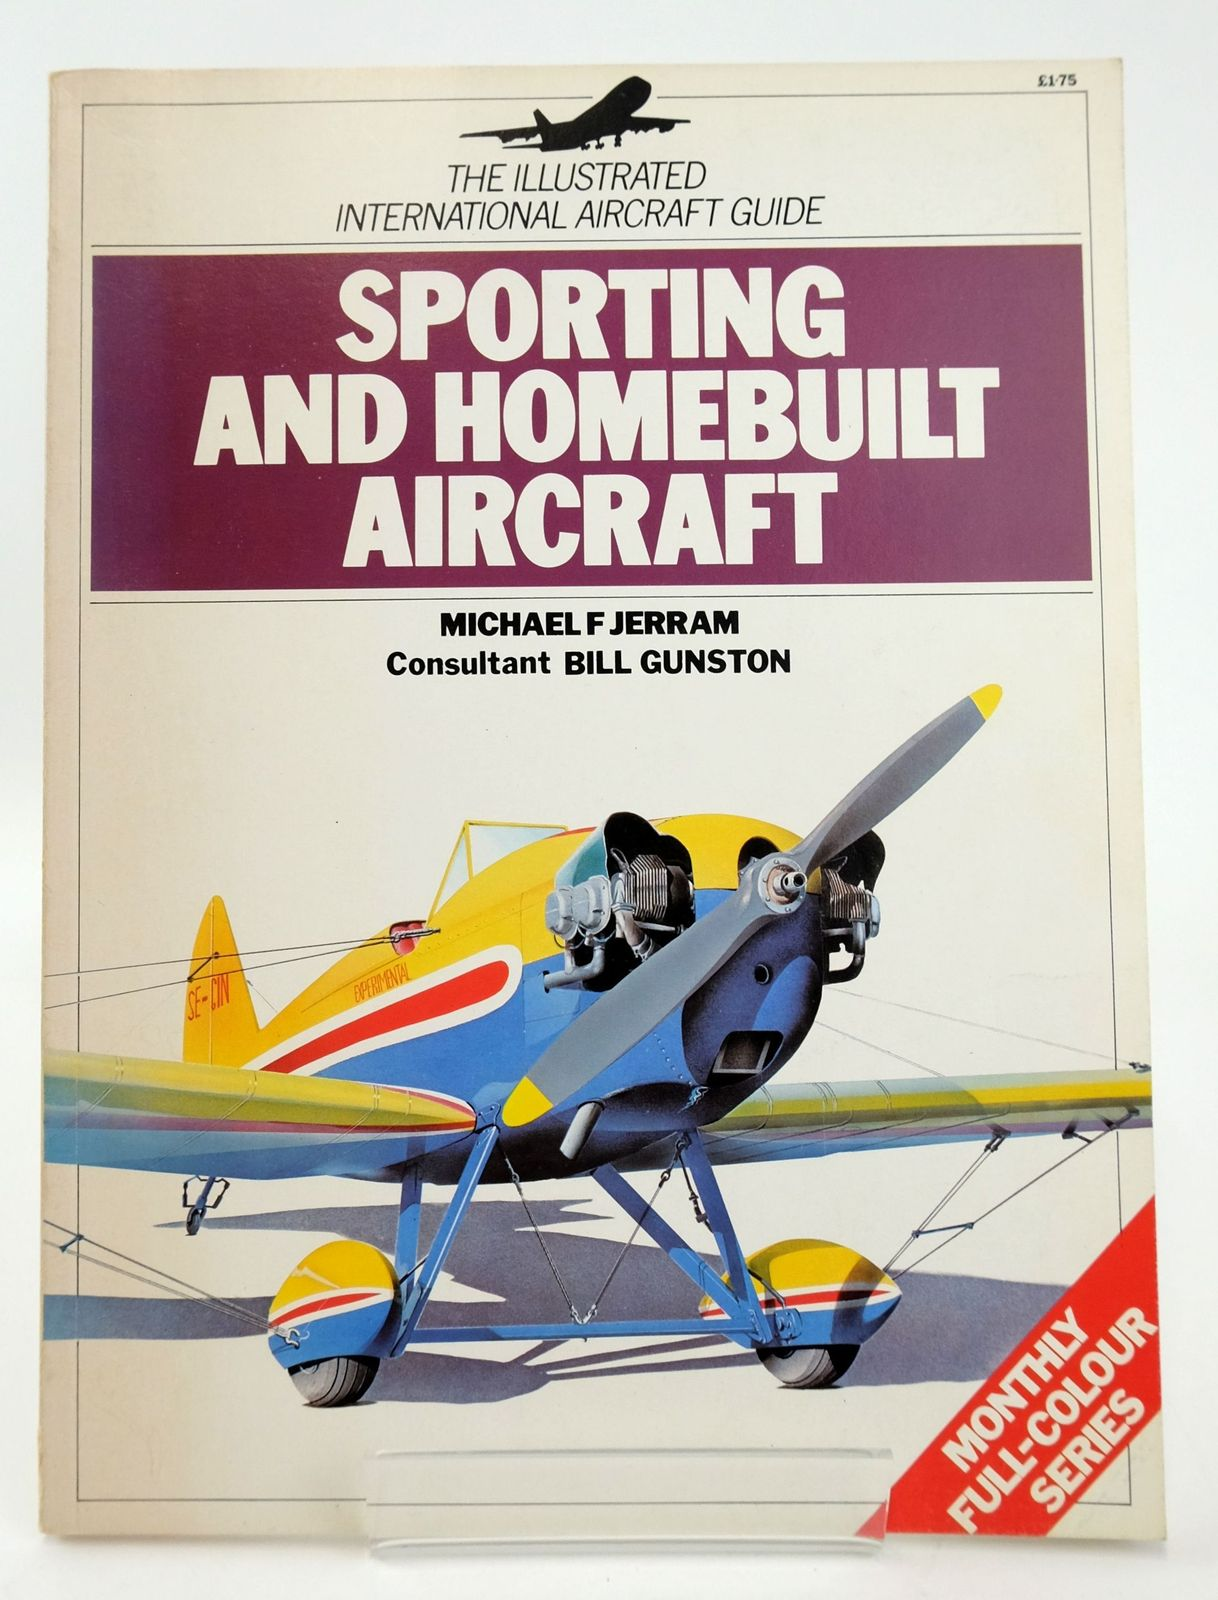 Photo of SPORTING AND HOMEBUILT AIRCRAFT (THE ILLUSTRATED INTERNATIONAL AIRCRAFT GUIDE) written by Jerram, Michael F. published by Macdonald Phoebus Limited (STOCK CODE: 1820139)  for sale by Stella & Rose's Books